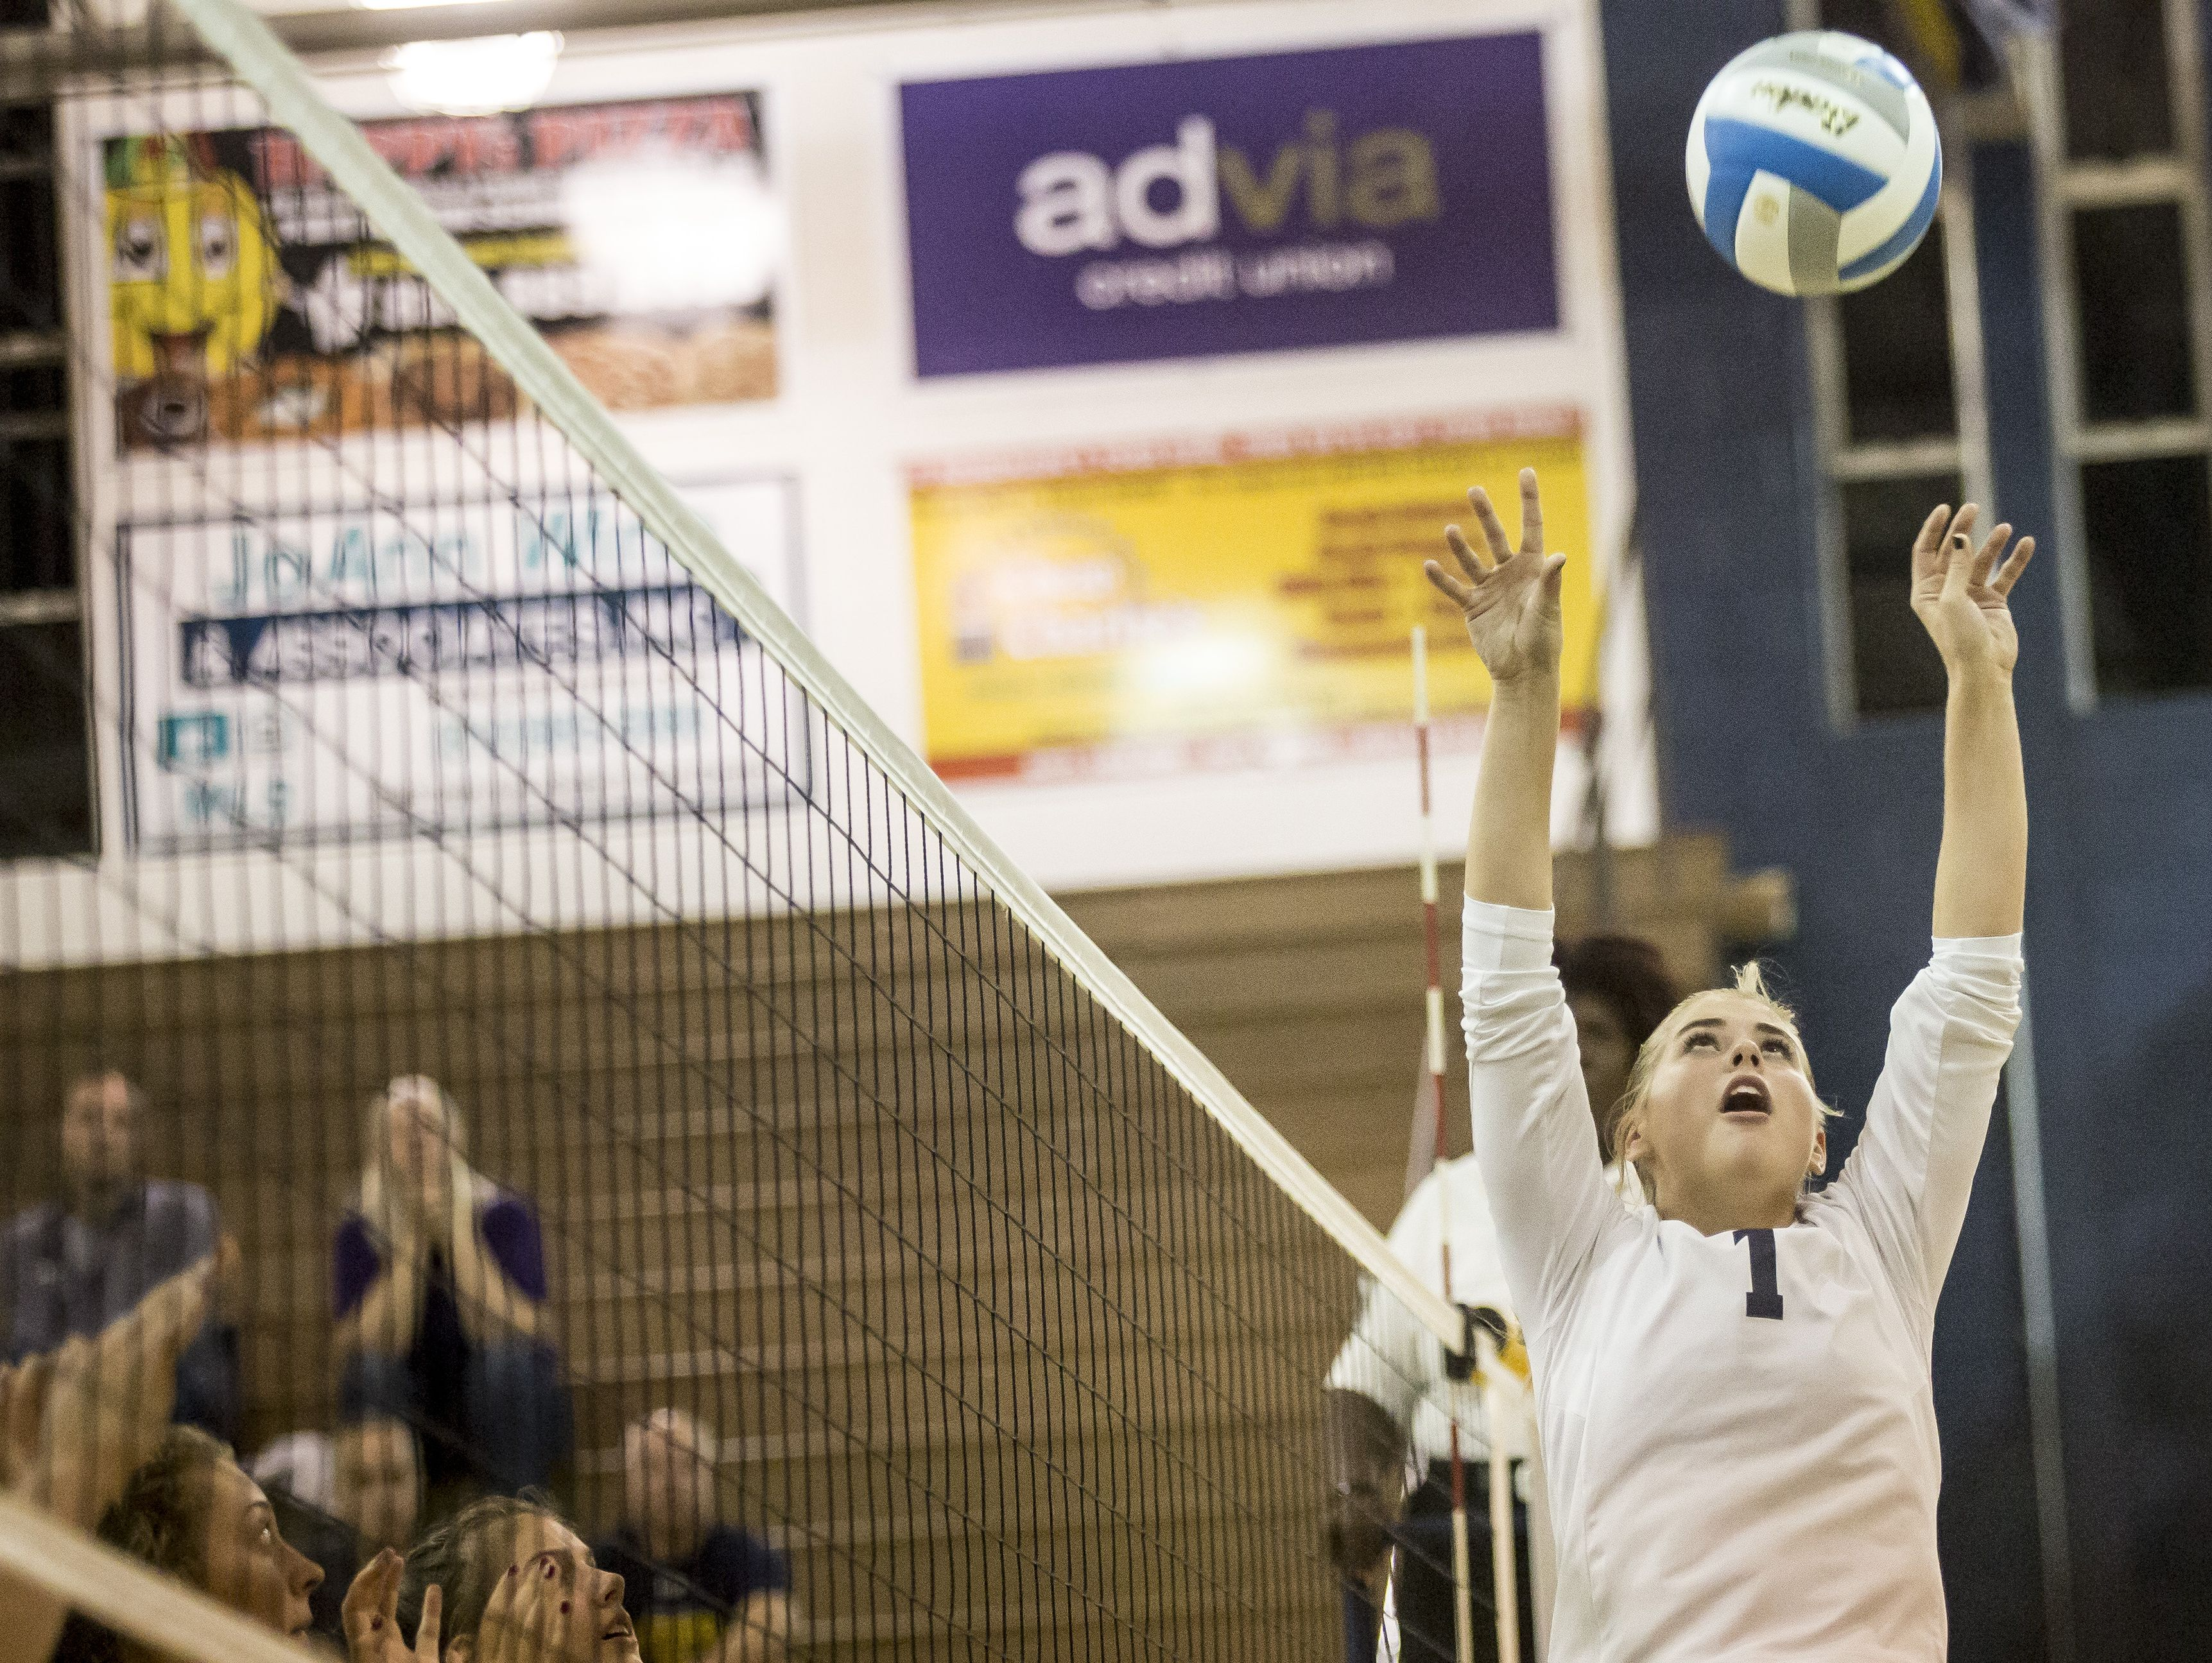 Port Huron Northern senior Brooke Bowerman sets the ball during a volleyball game Tuesday, September 27, 2016 at Port Huron Northern High School.